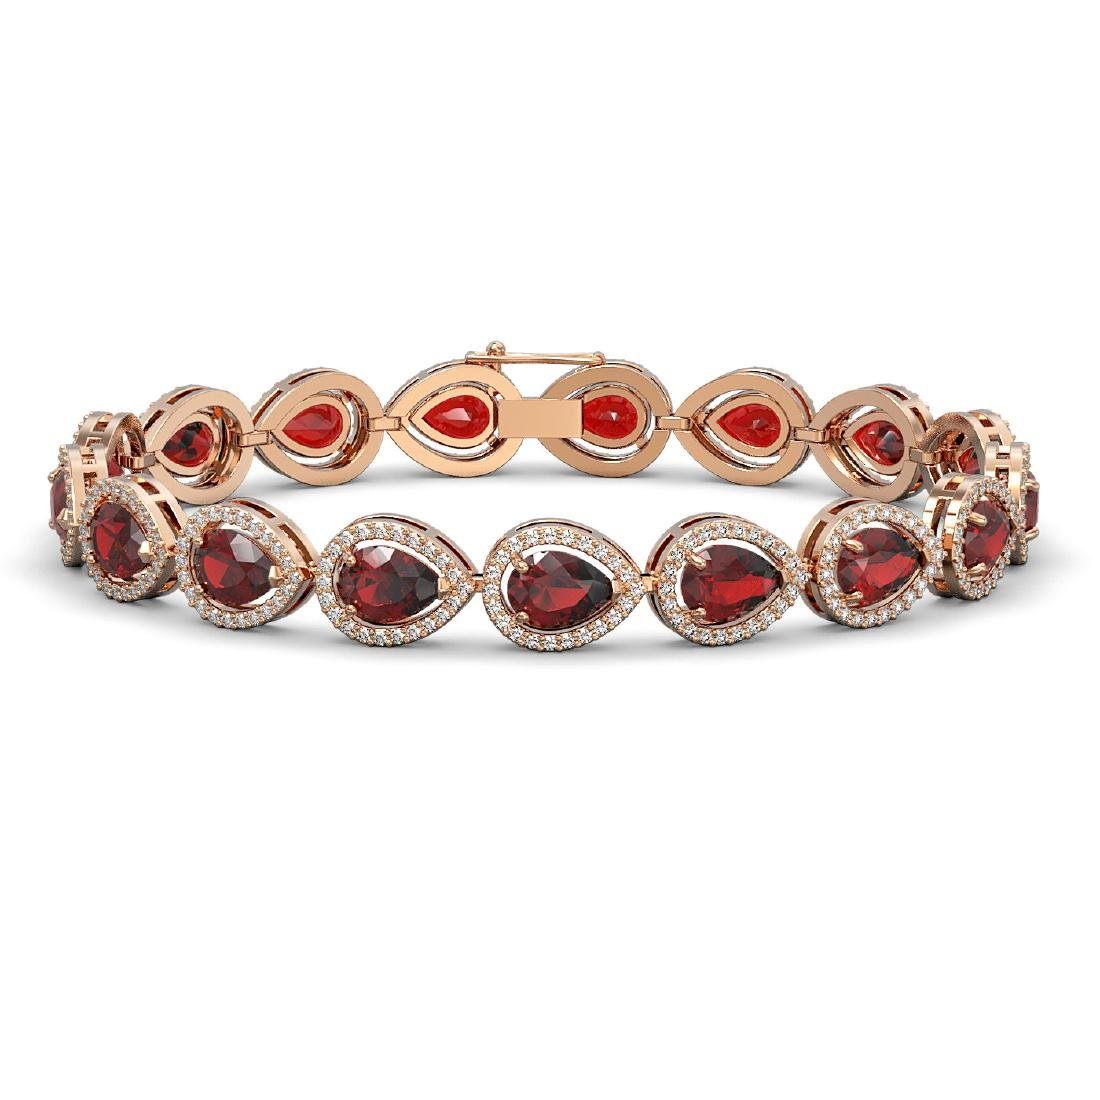 17.44 CTW Garnet & Diamond Halo Bracelet 10K Rose Gold